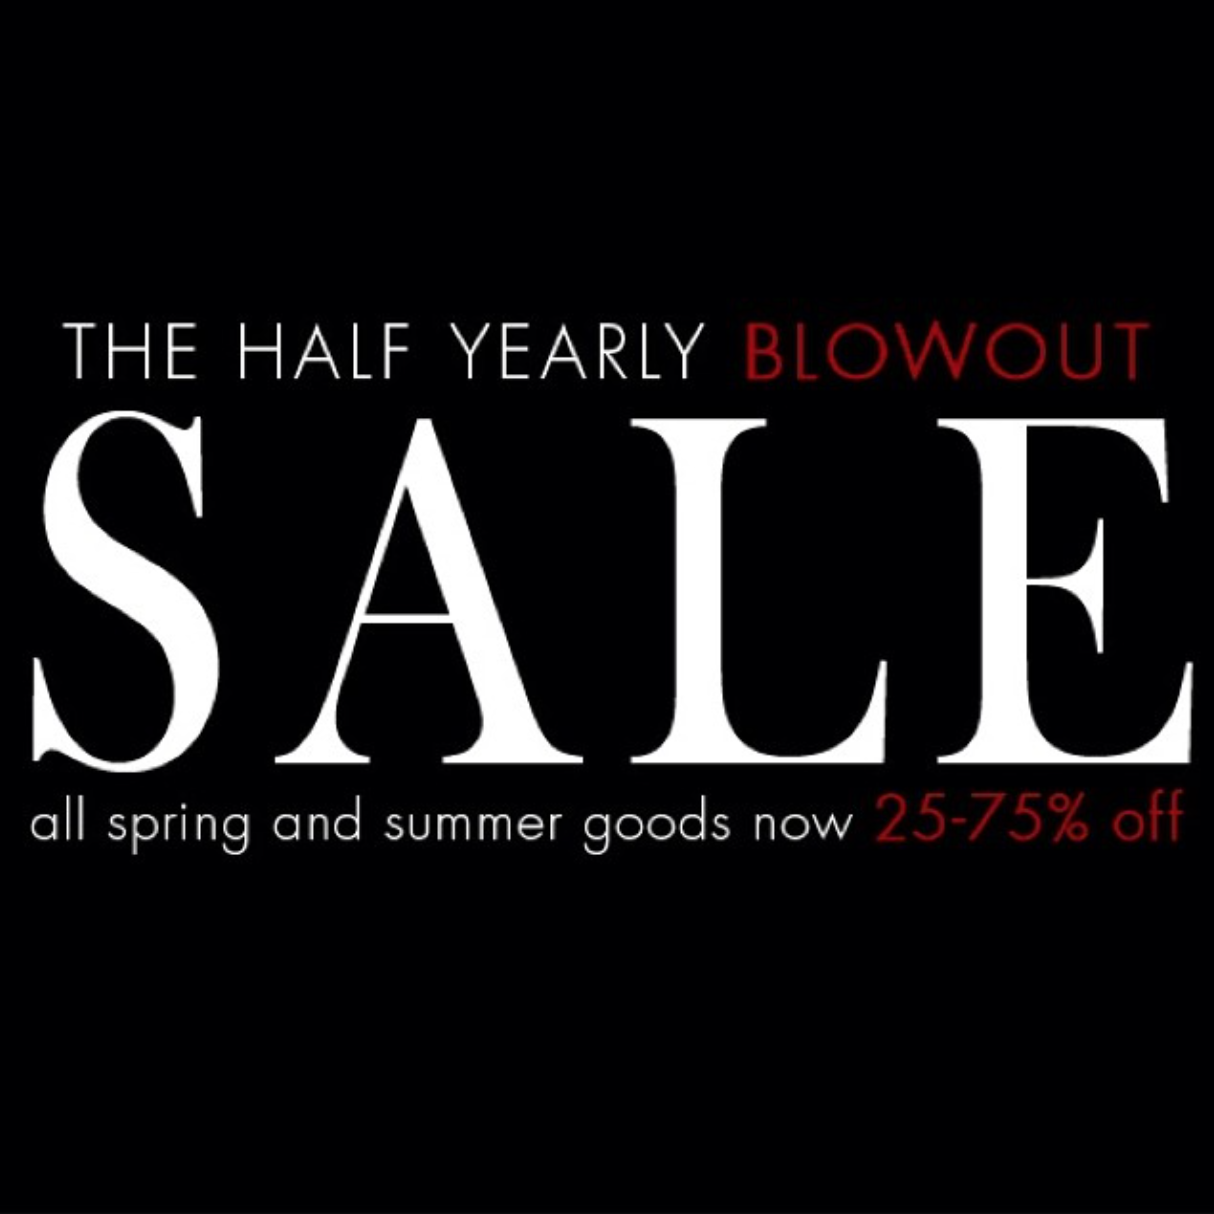 Our DIANI summer sale is still going! All spring/summer goodies are now 25-75% OFF. Shop in store and online! #sale #blowoutsale #dianisale #designersale #onlinesale #santabarbara #shopping #bestplacetoshopinsantabarbara #dianiboutique